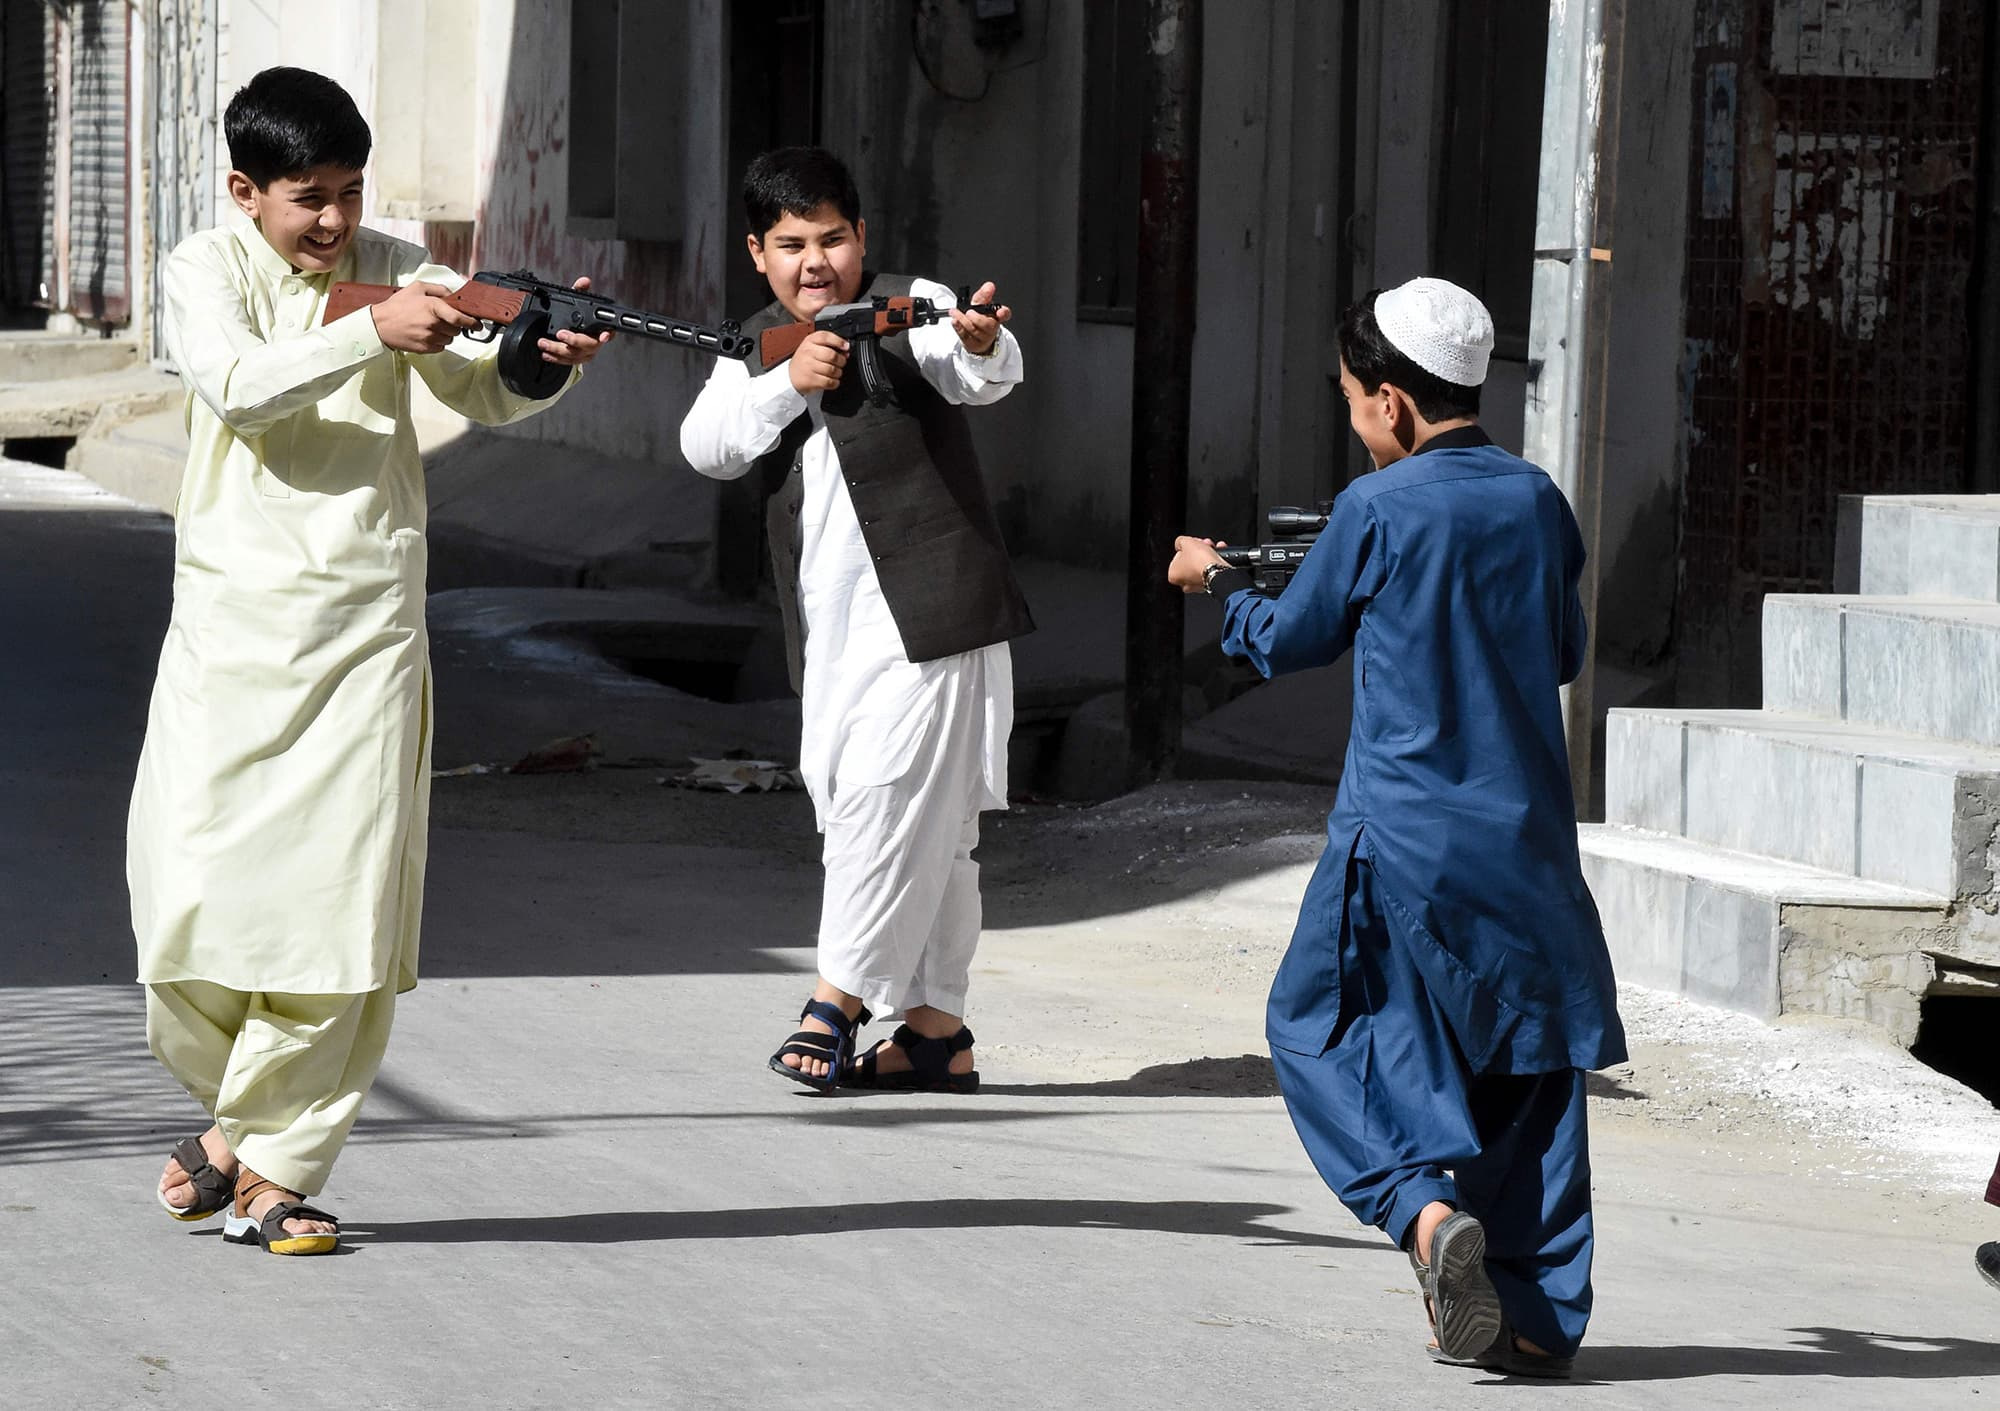 Kids play with toy guns on the first day of Eidul Fitr in Quetta. — AFP